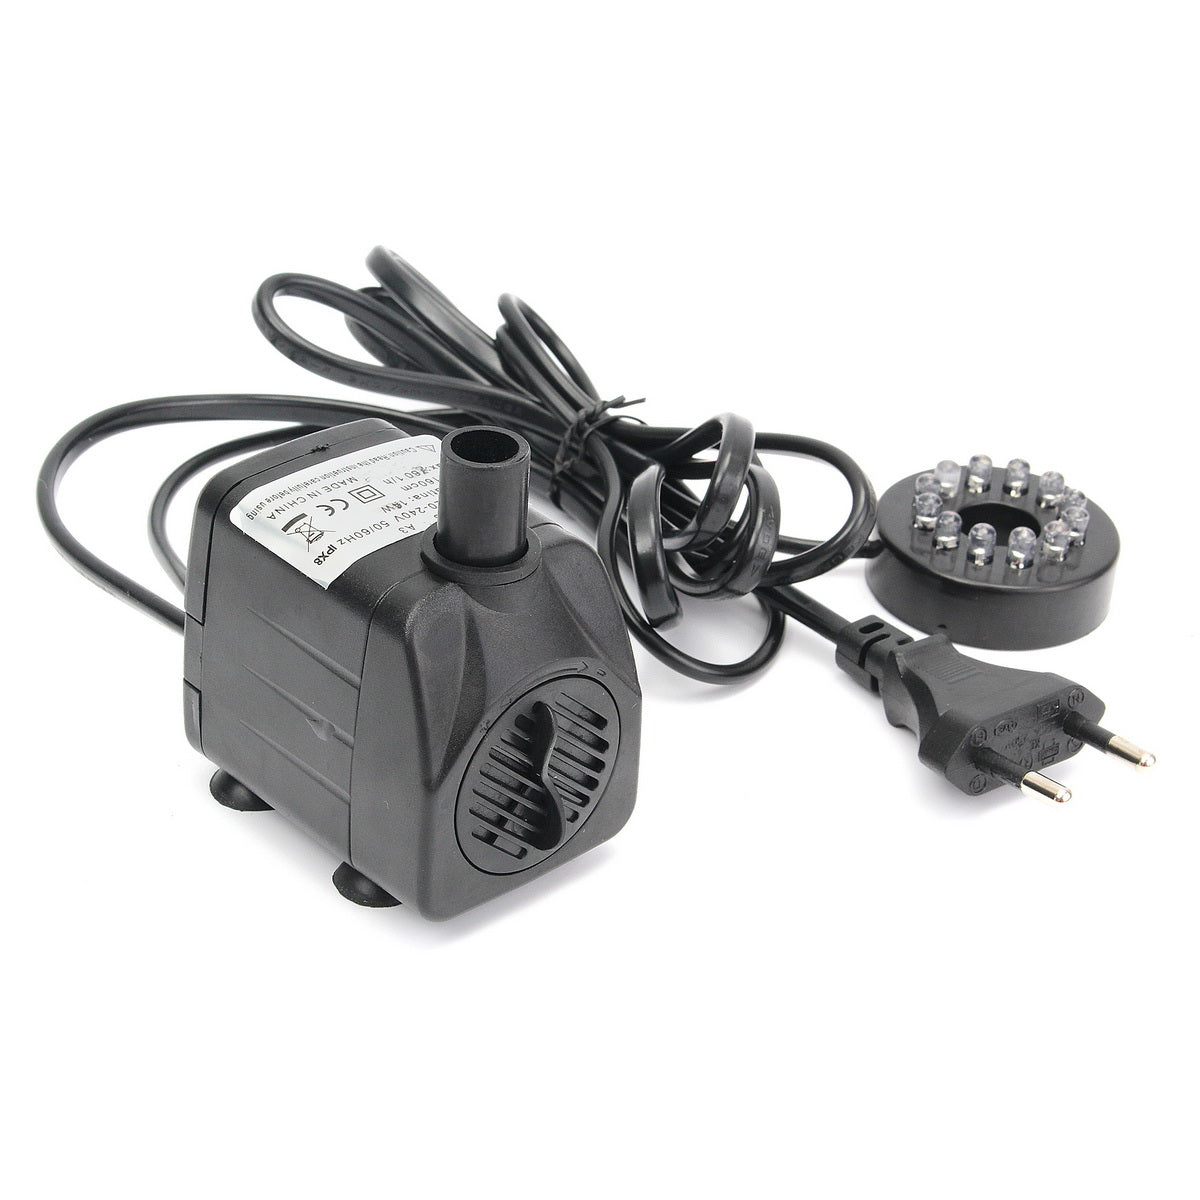 10W 220V LED Light Submersible Water Pump Aquariums Fish Pond Fountain Sump Waterfall 600L/h